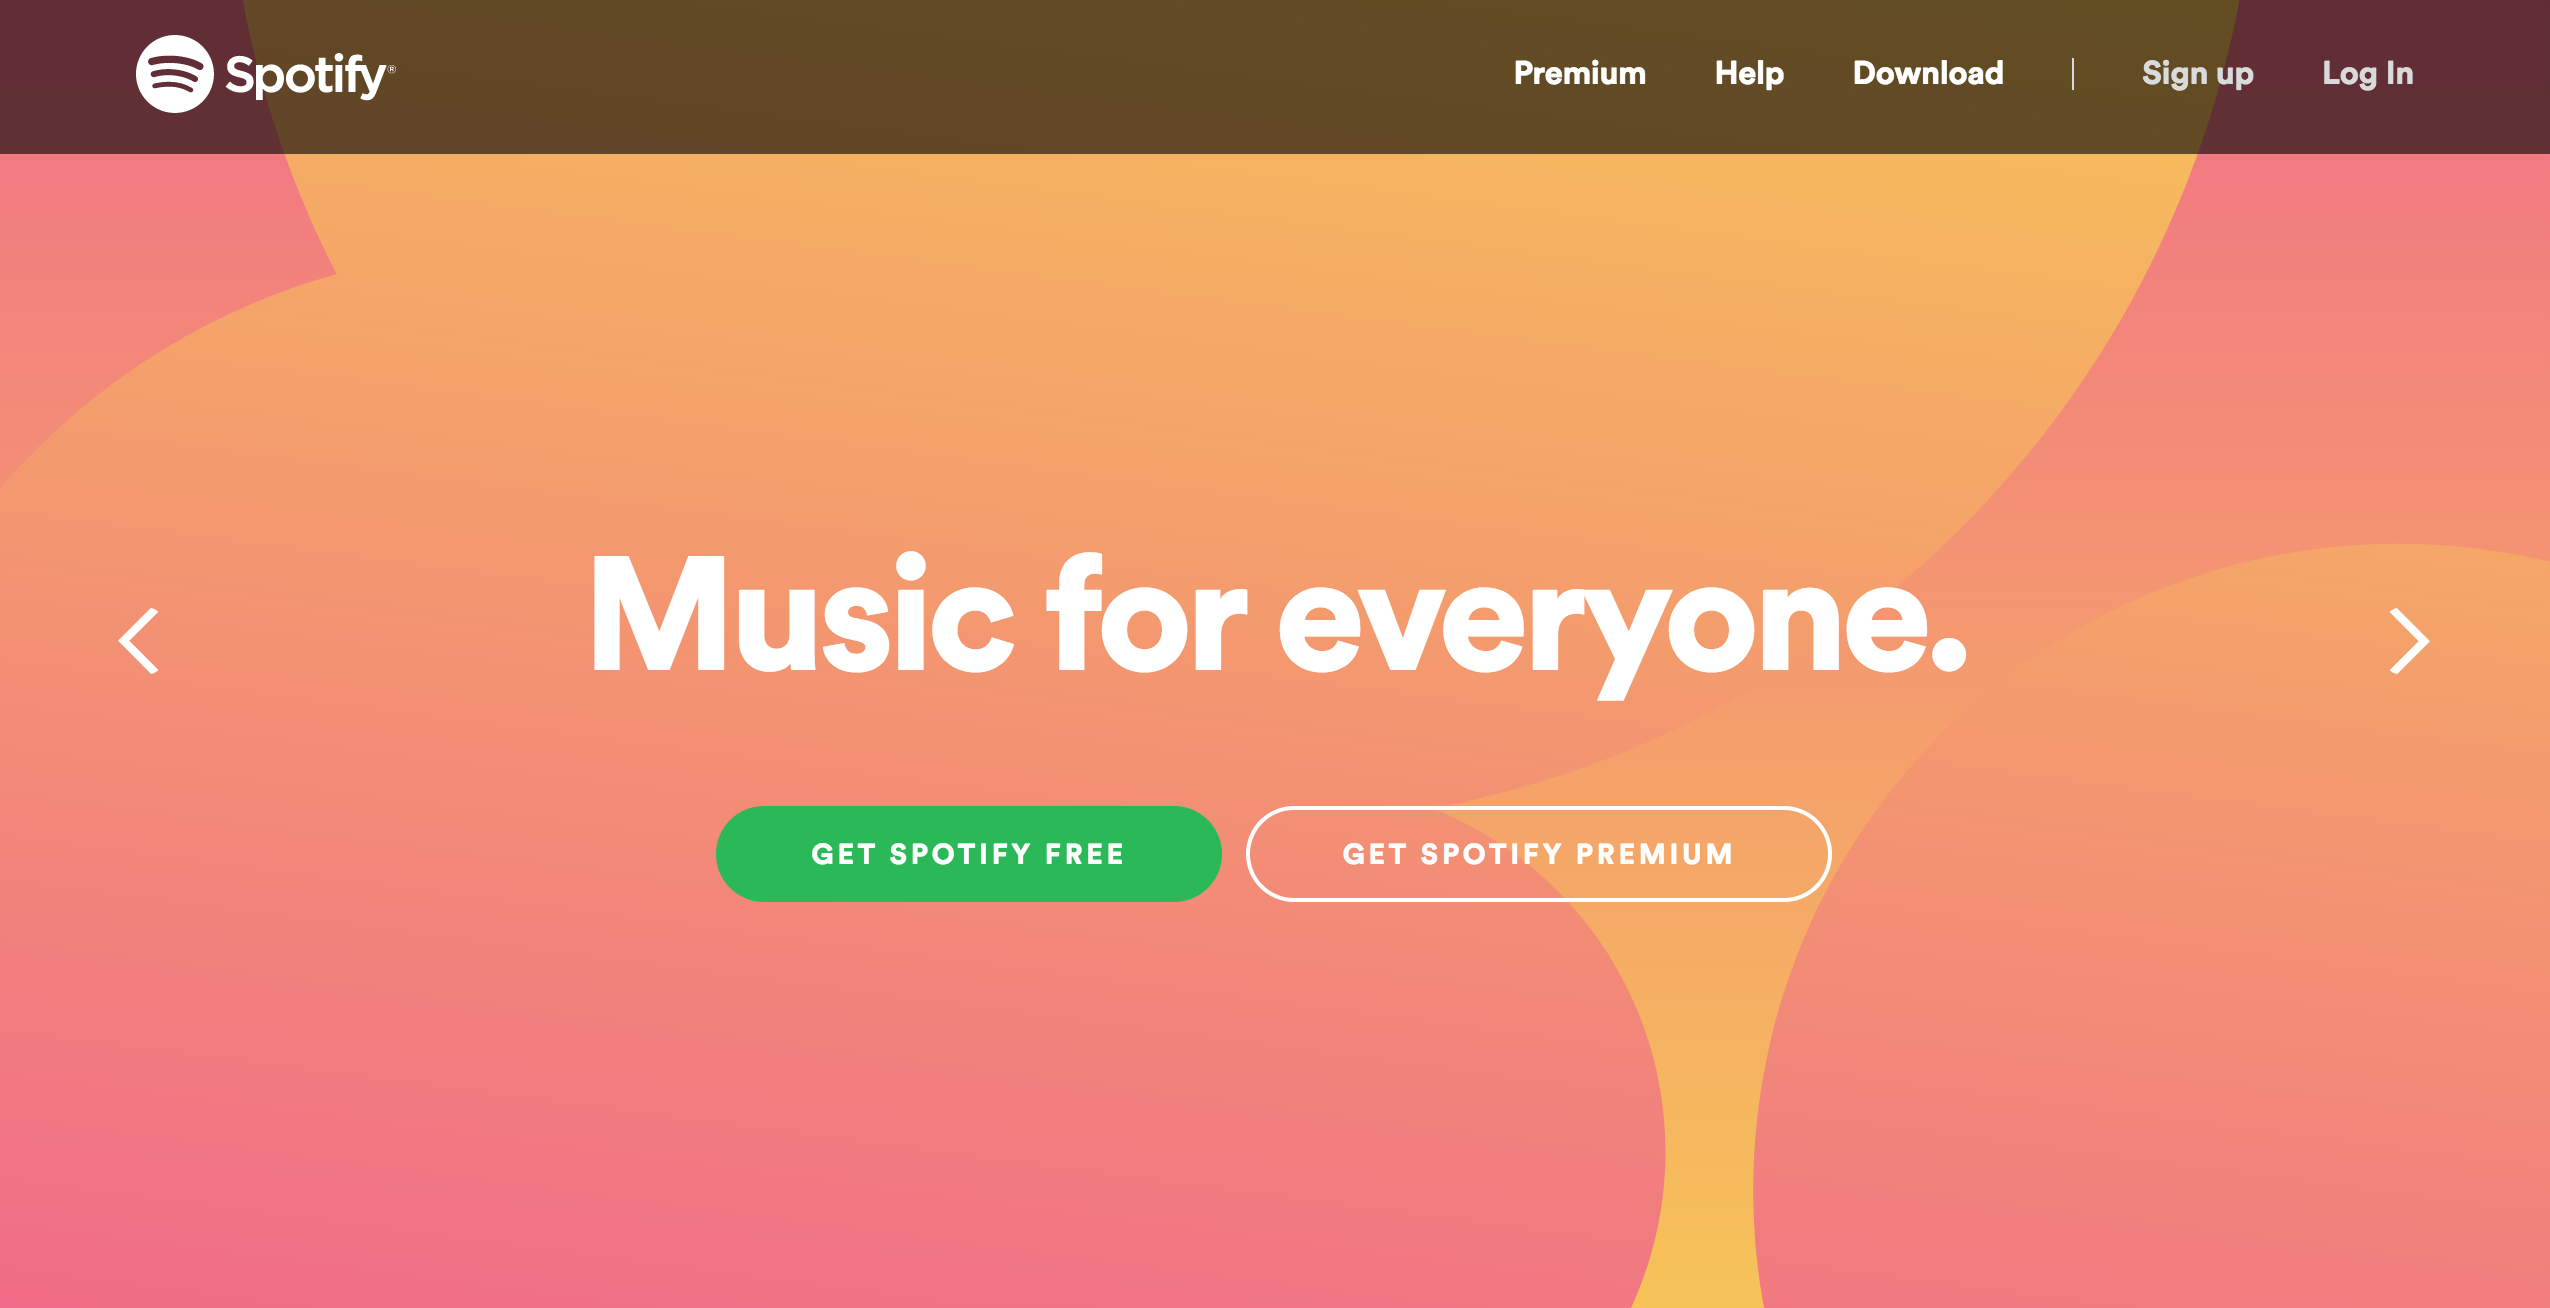 spotify marketing ideas